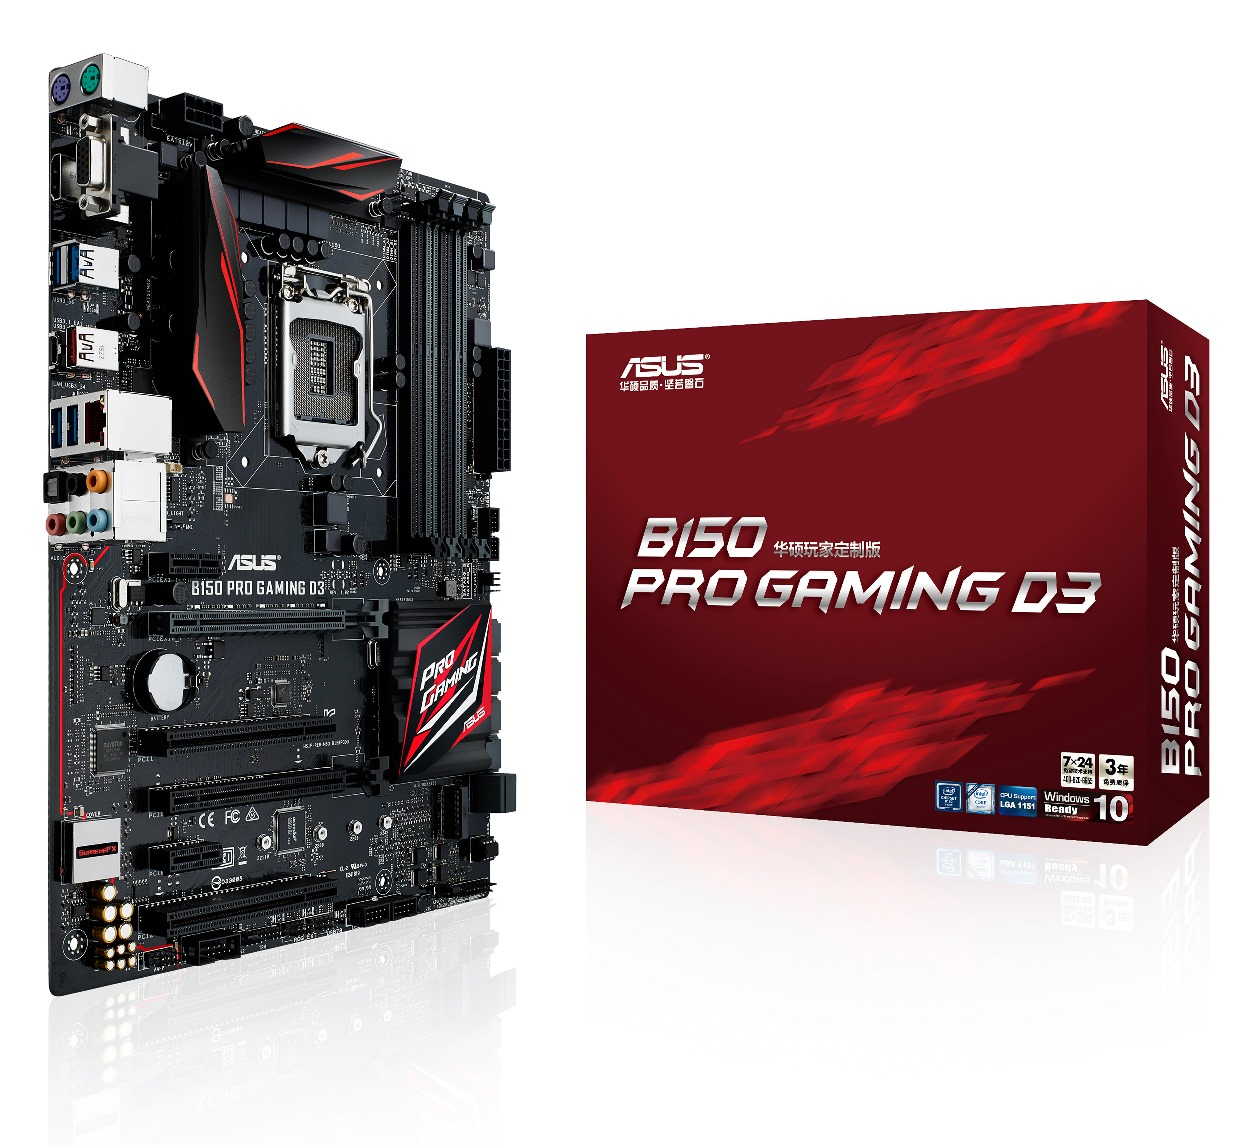 B150-Pro-Gaming-D3 3Dbox-MB-ACC-version-